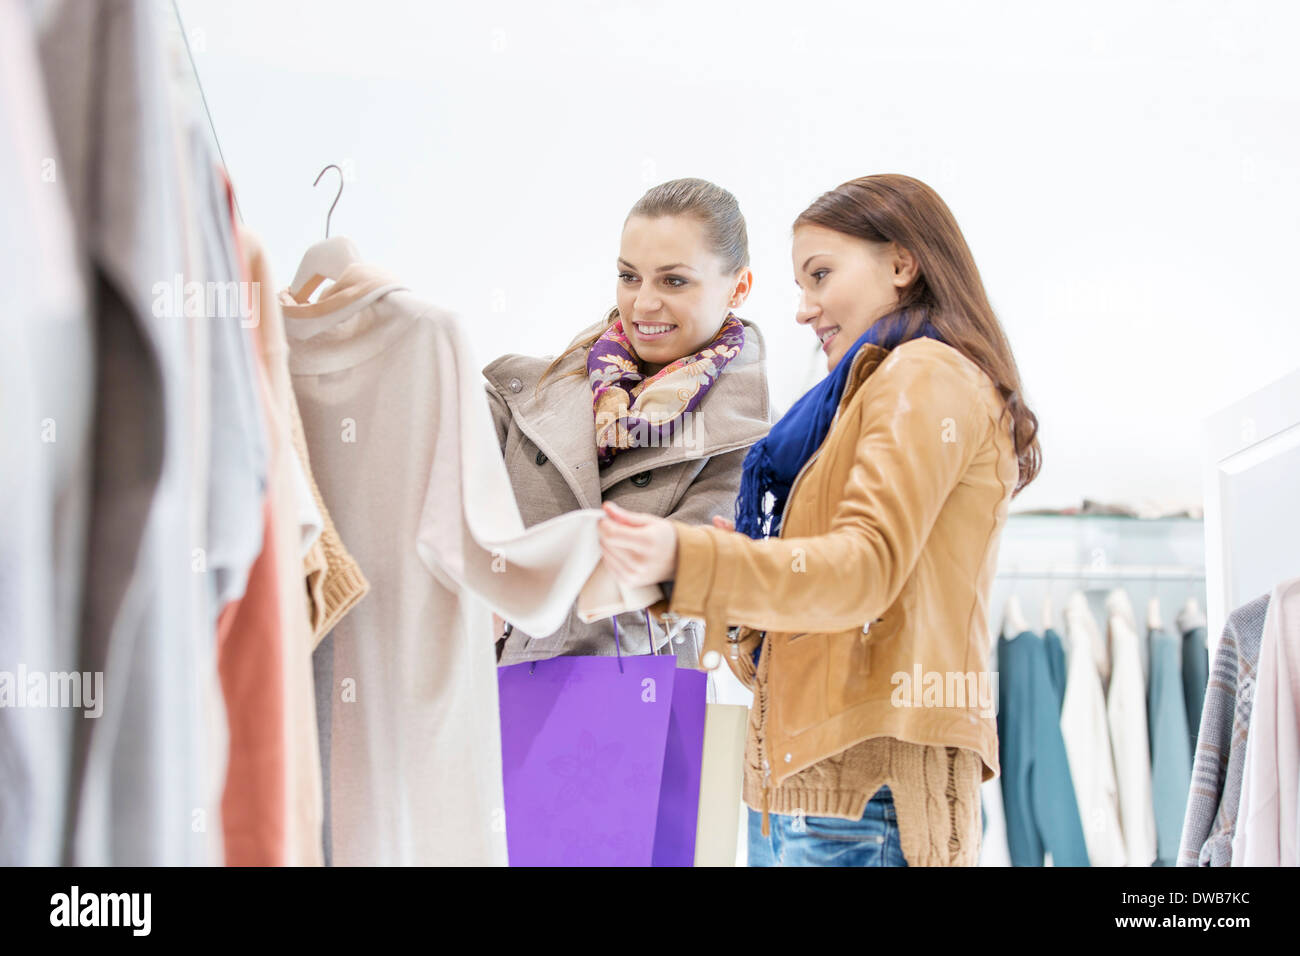 Young female friends choosing sweater in store Photo Stock